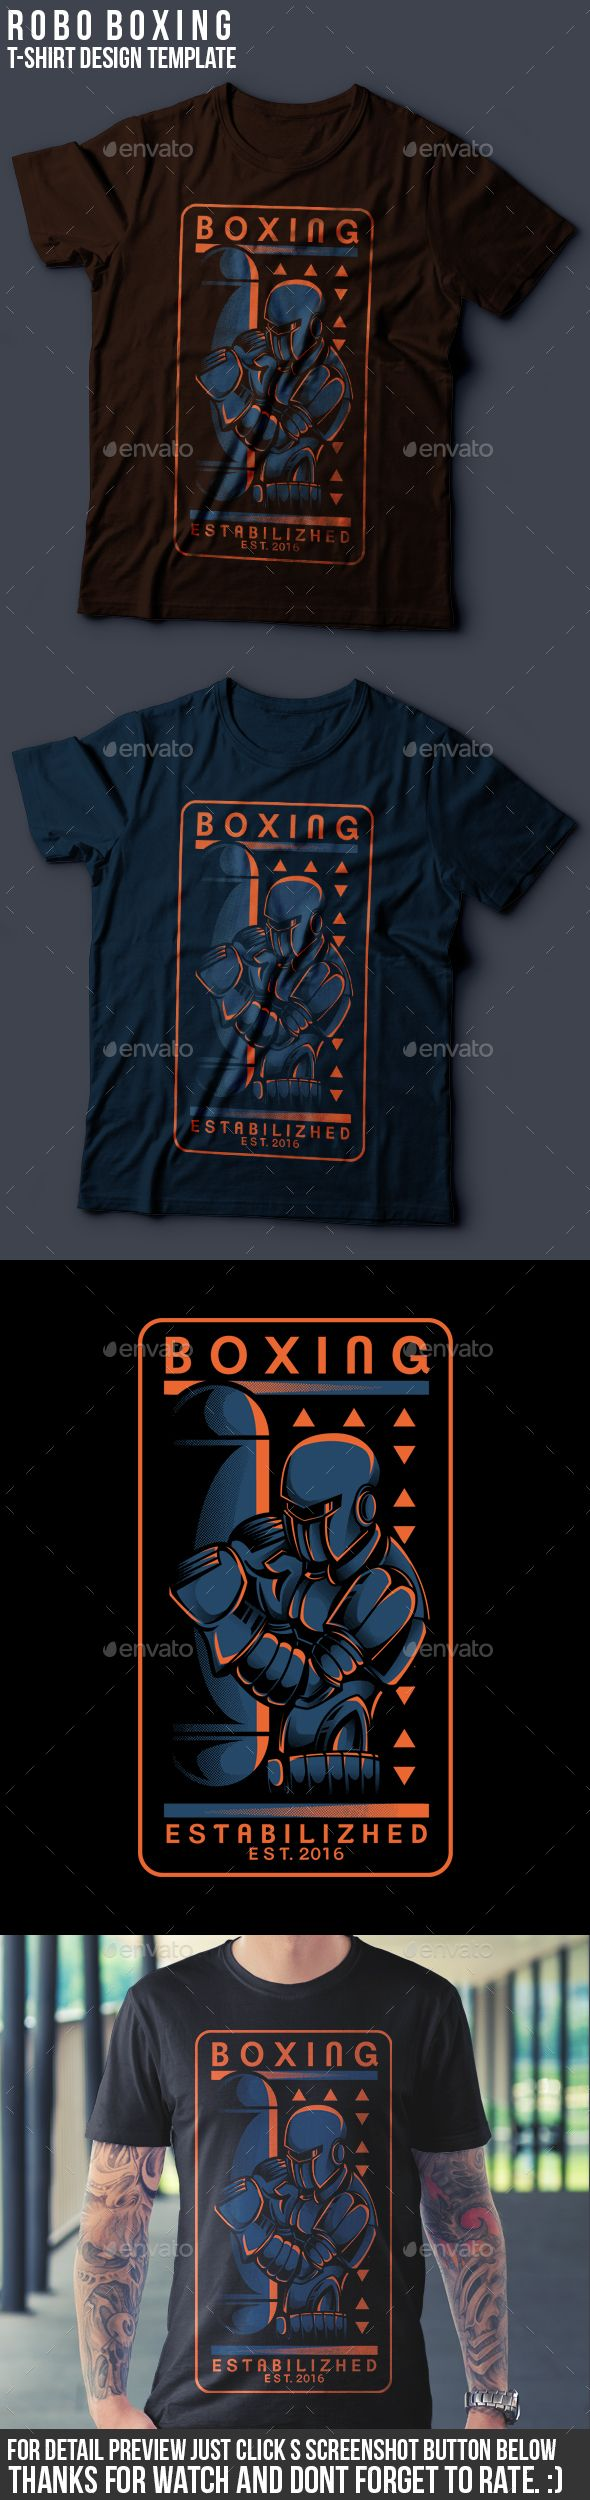 robo boxing tshirt design eps template martial merch download